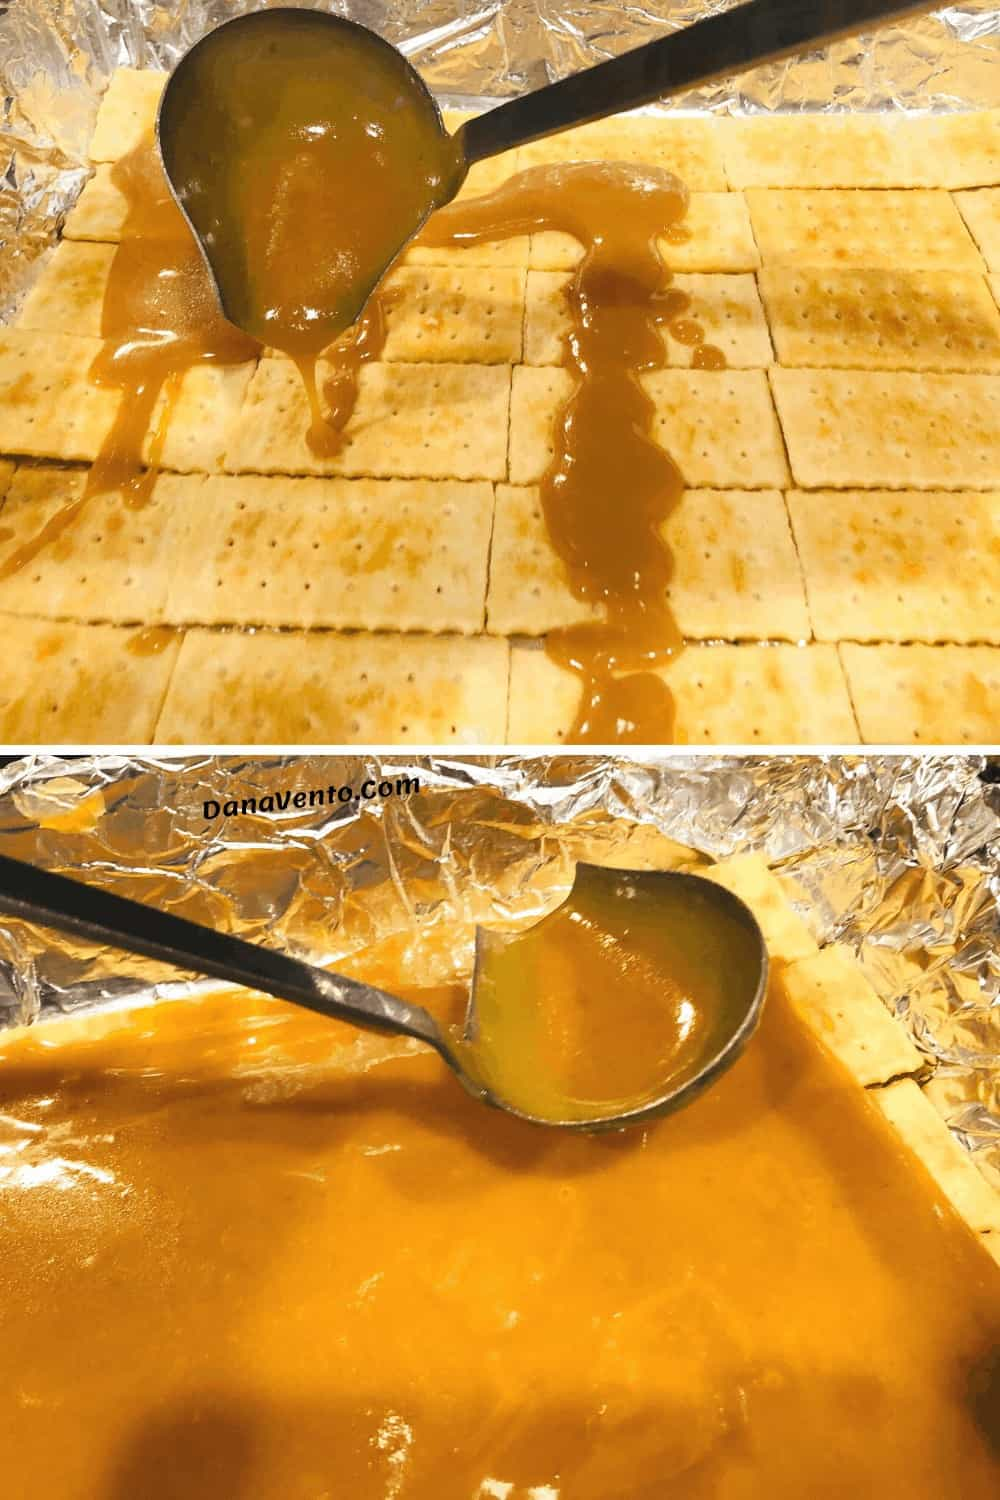 spreading caramel on crackers